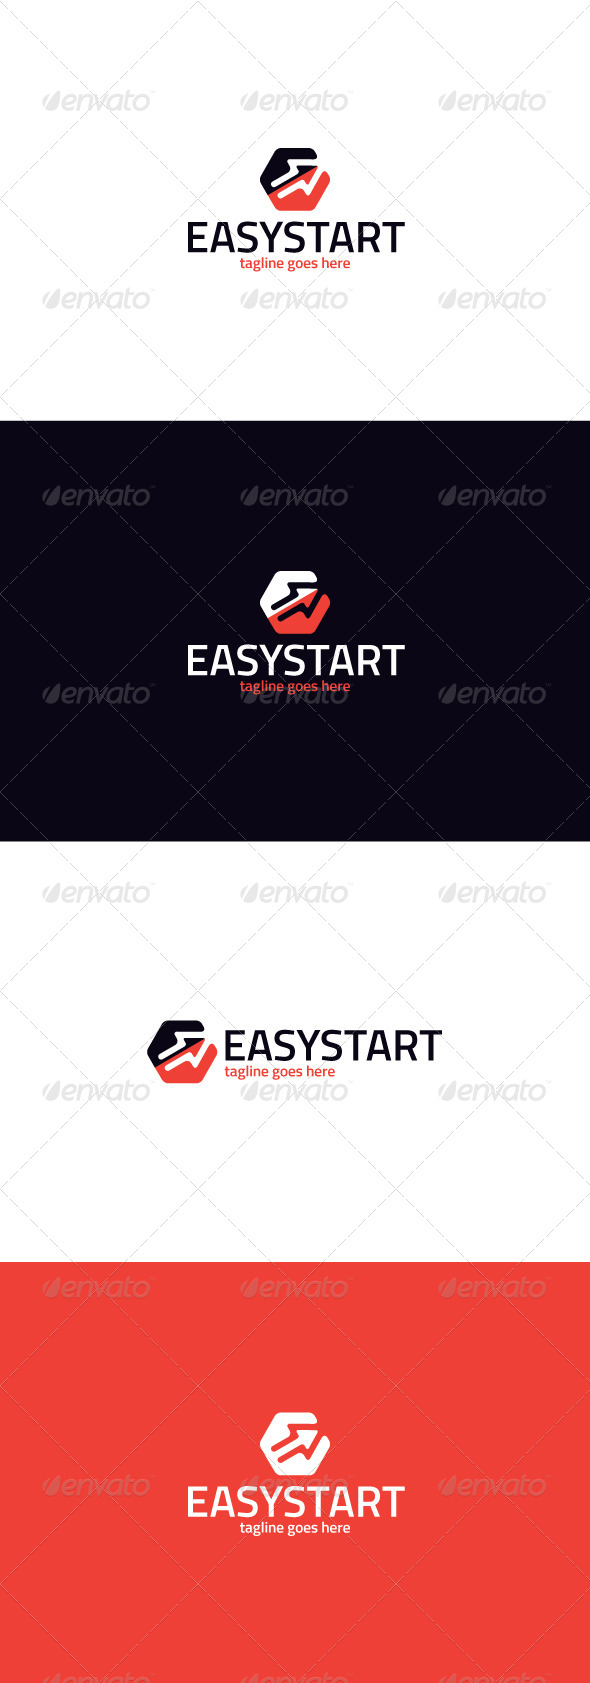 GraphicRiver Easy Start Logo 8423880